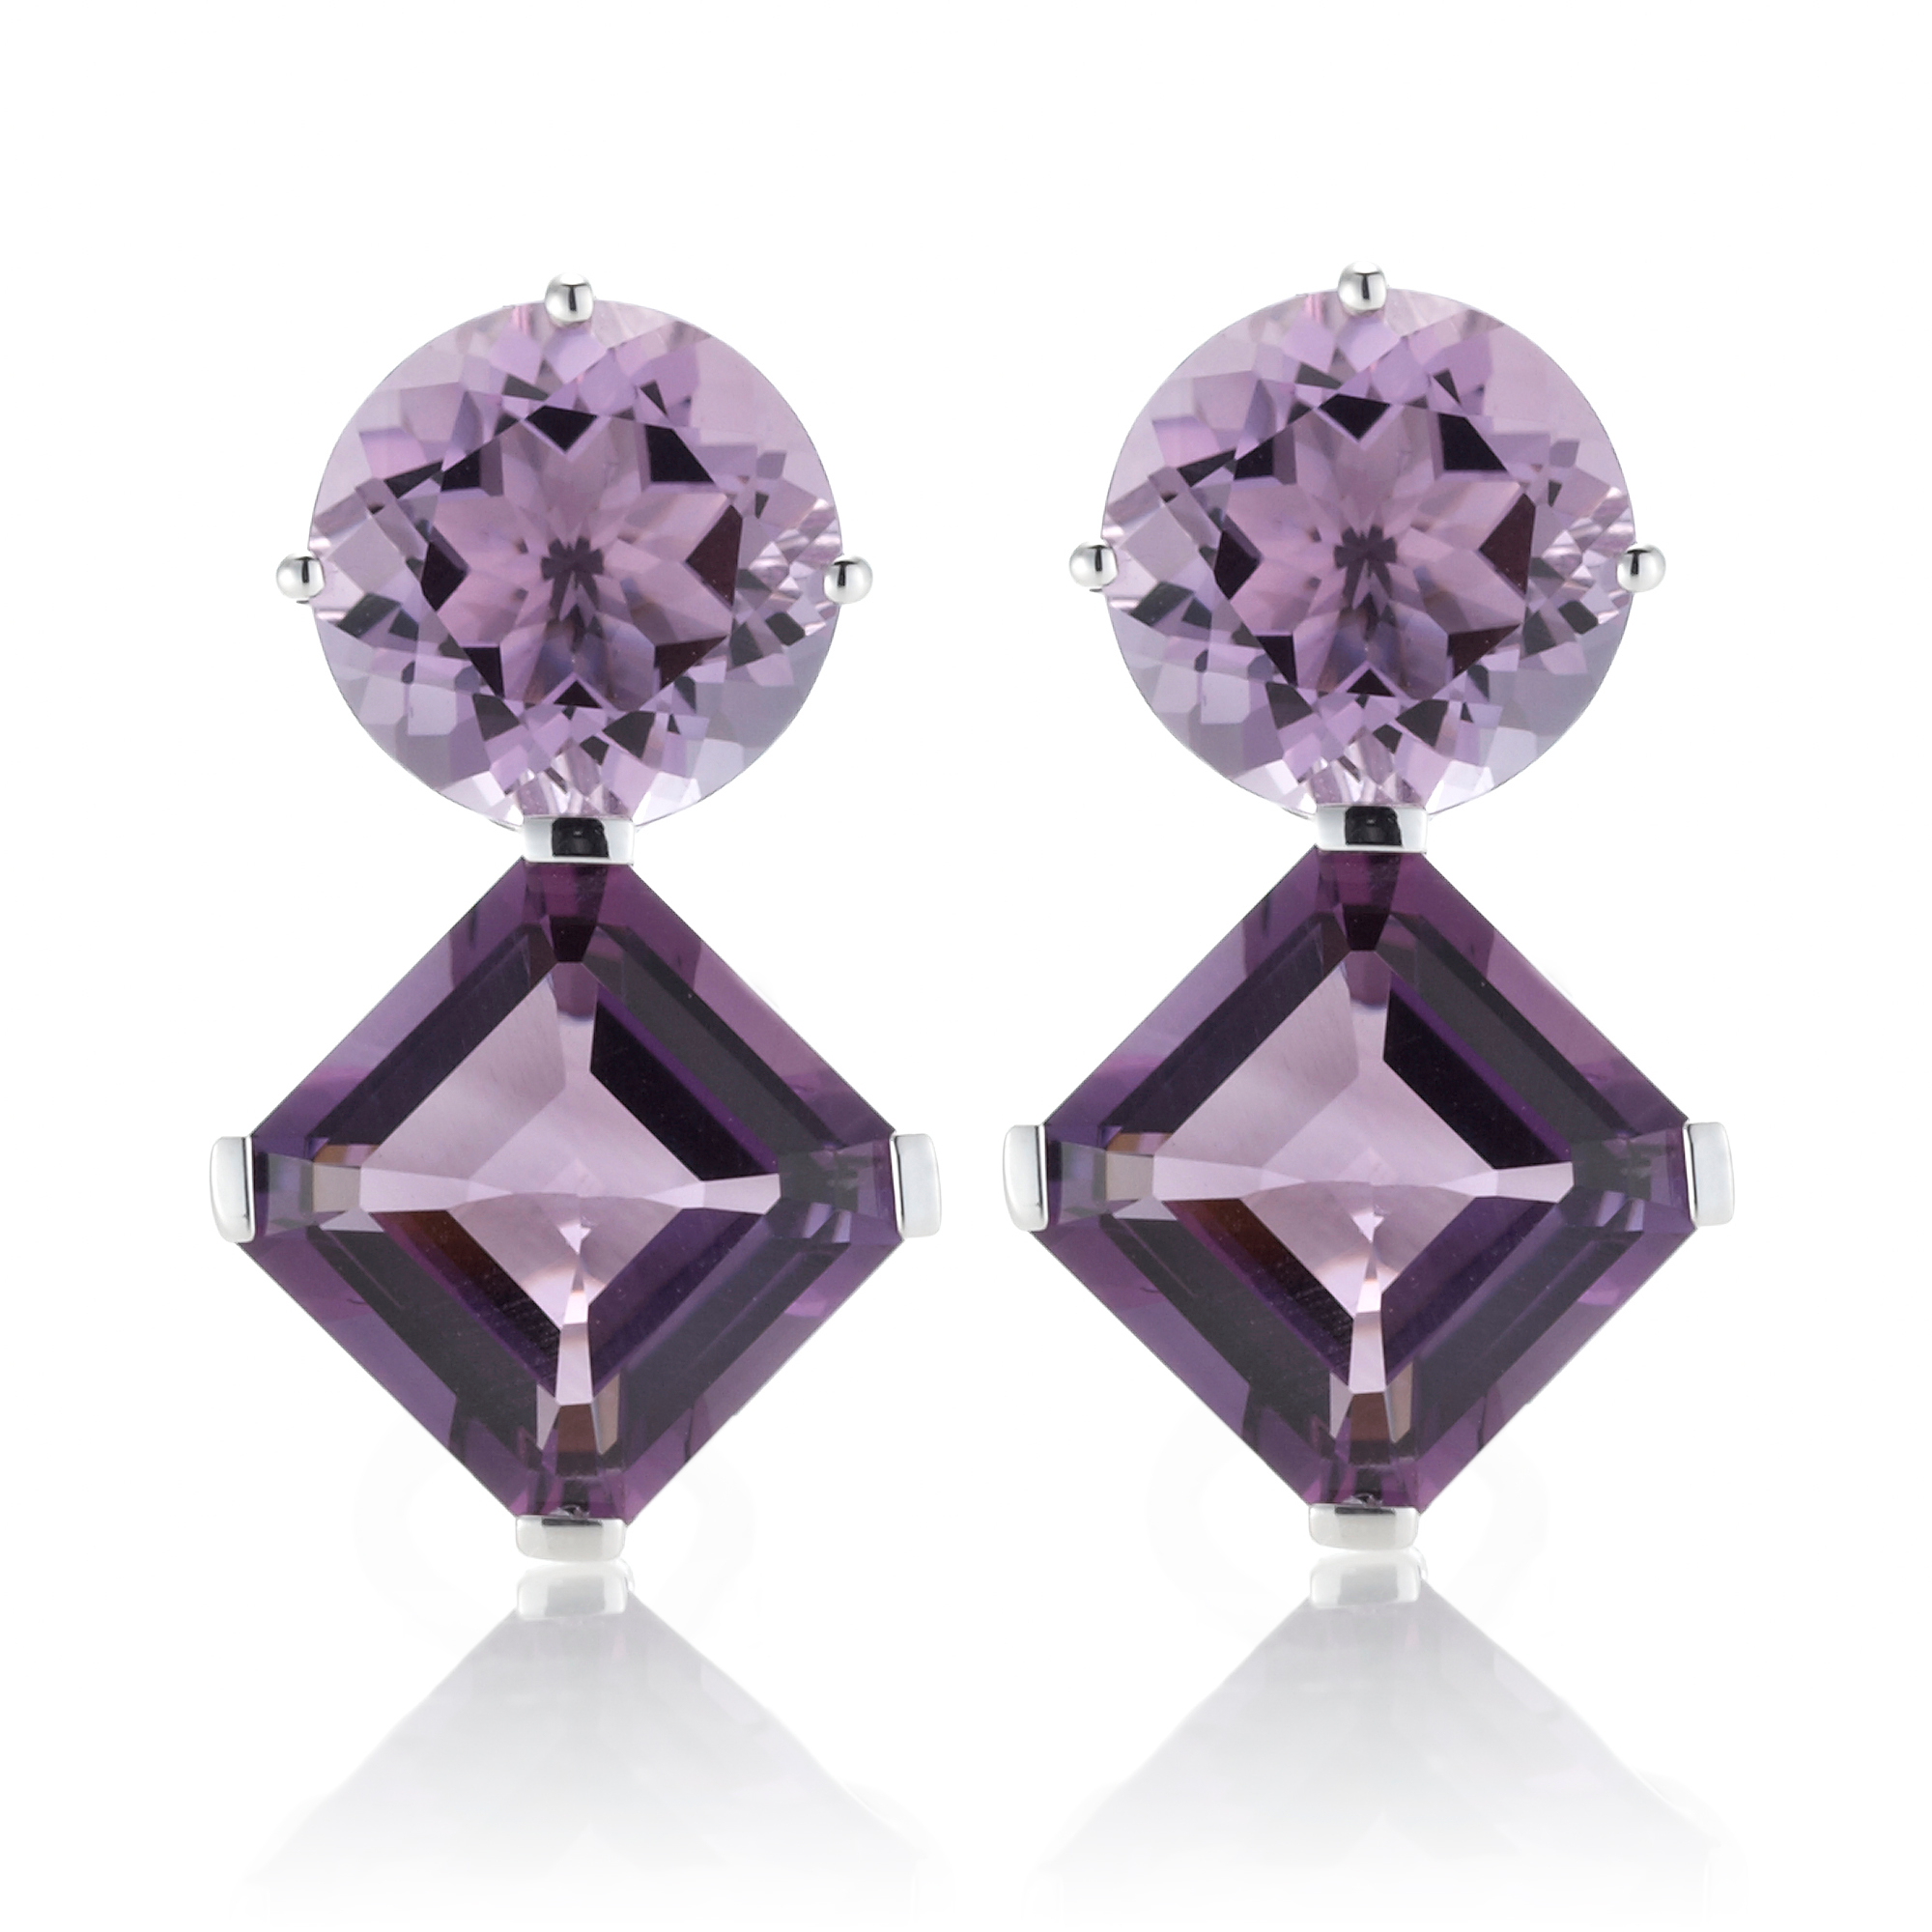 Gump's Round & Square Faceted Two-Tone Amethyst Earrings